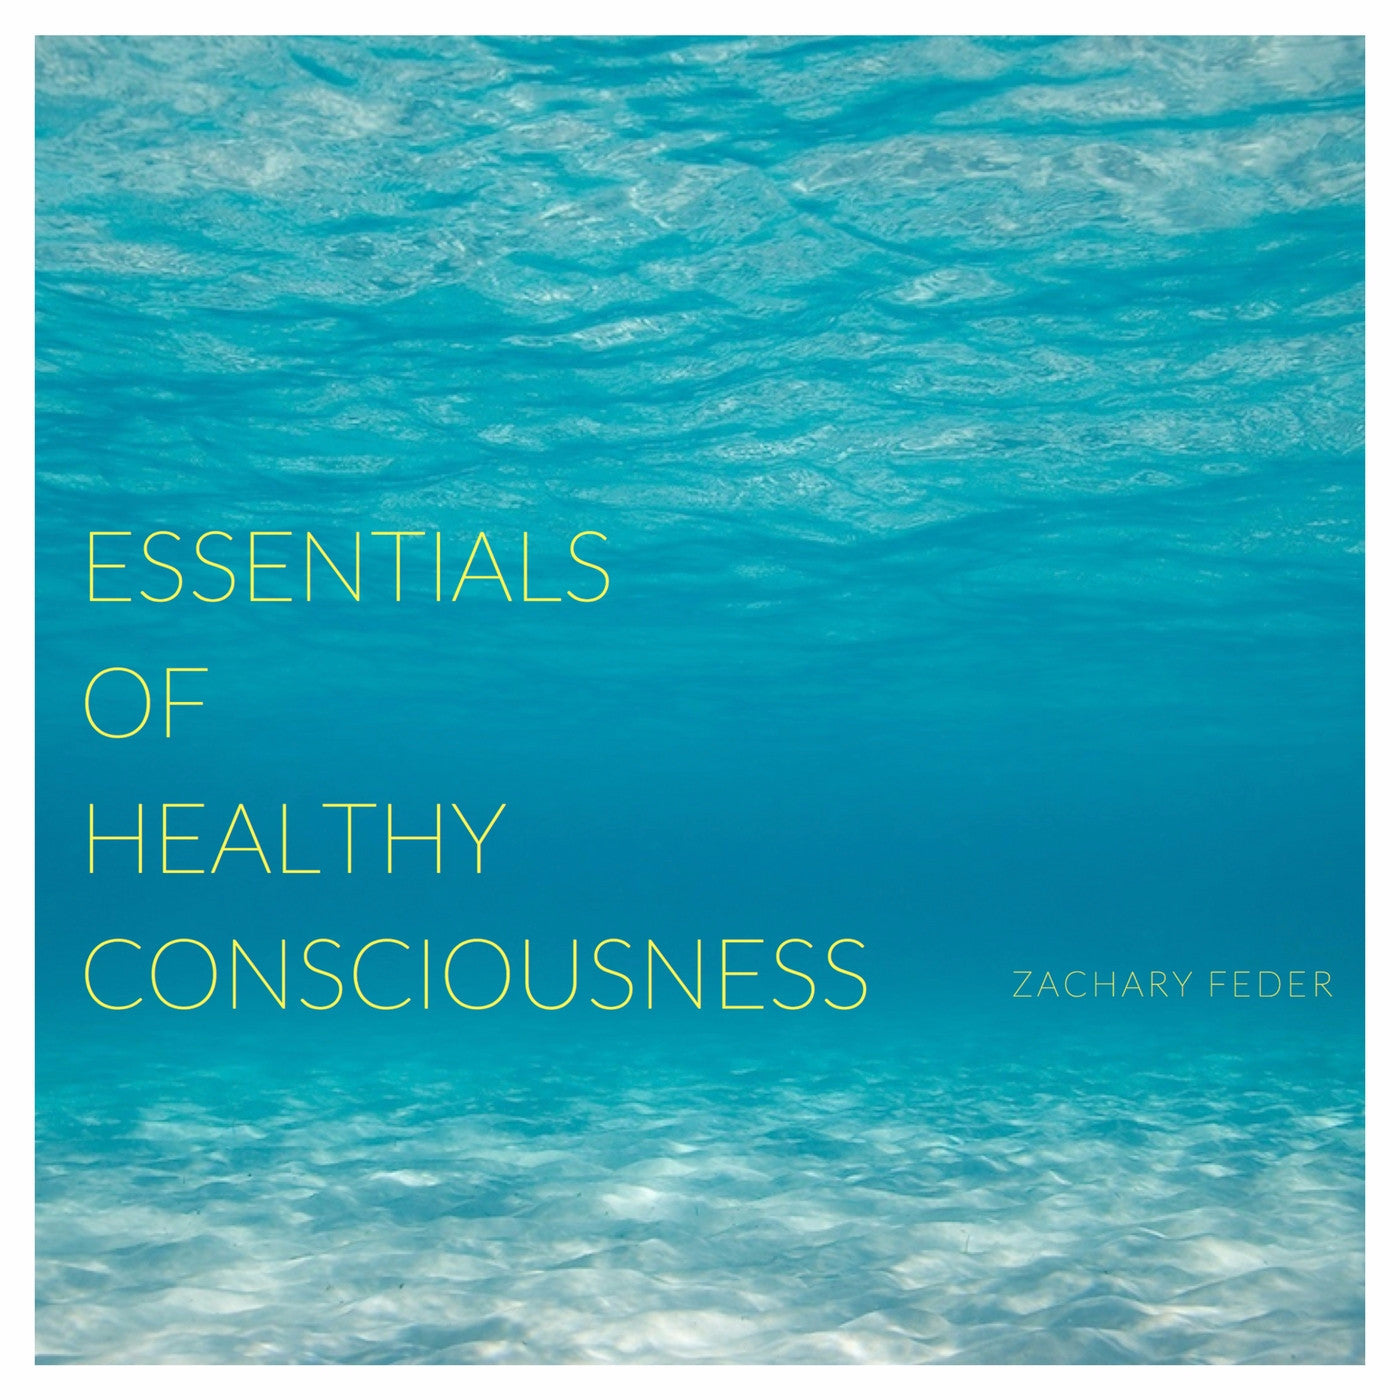 Essentials of Healthy Consciousness: Part 1 - Digital Download